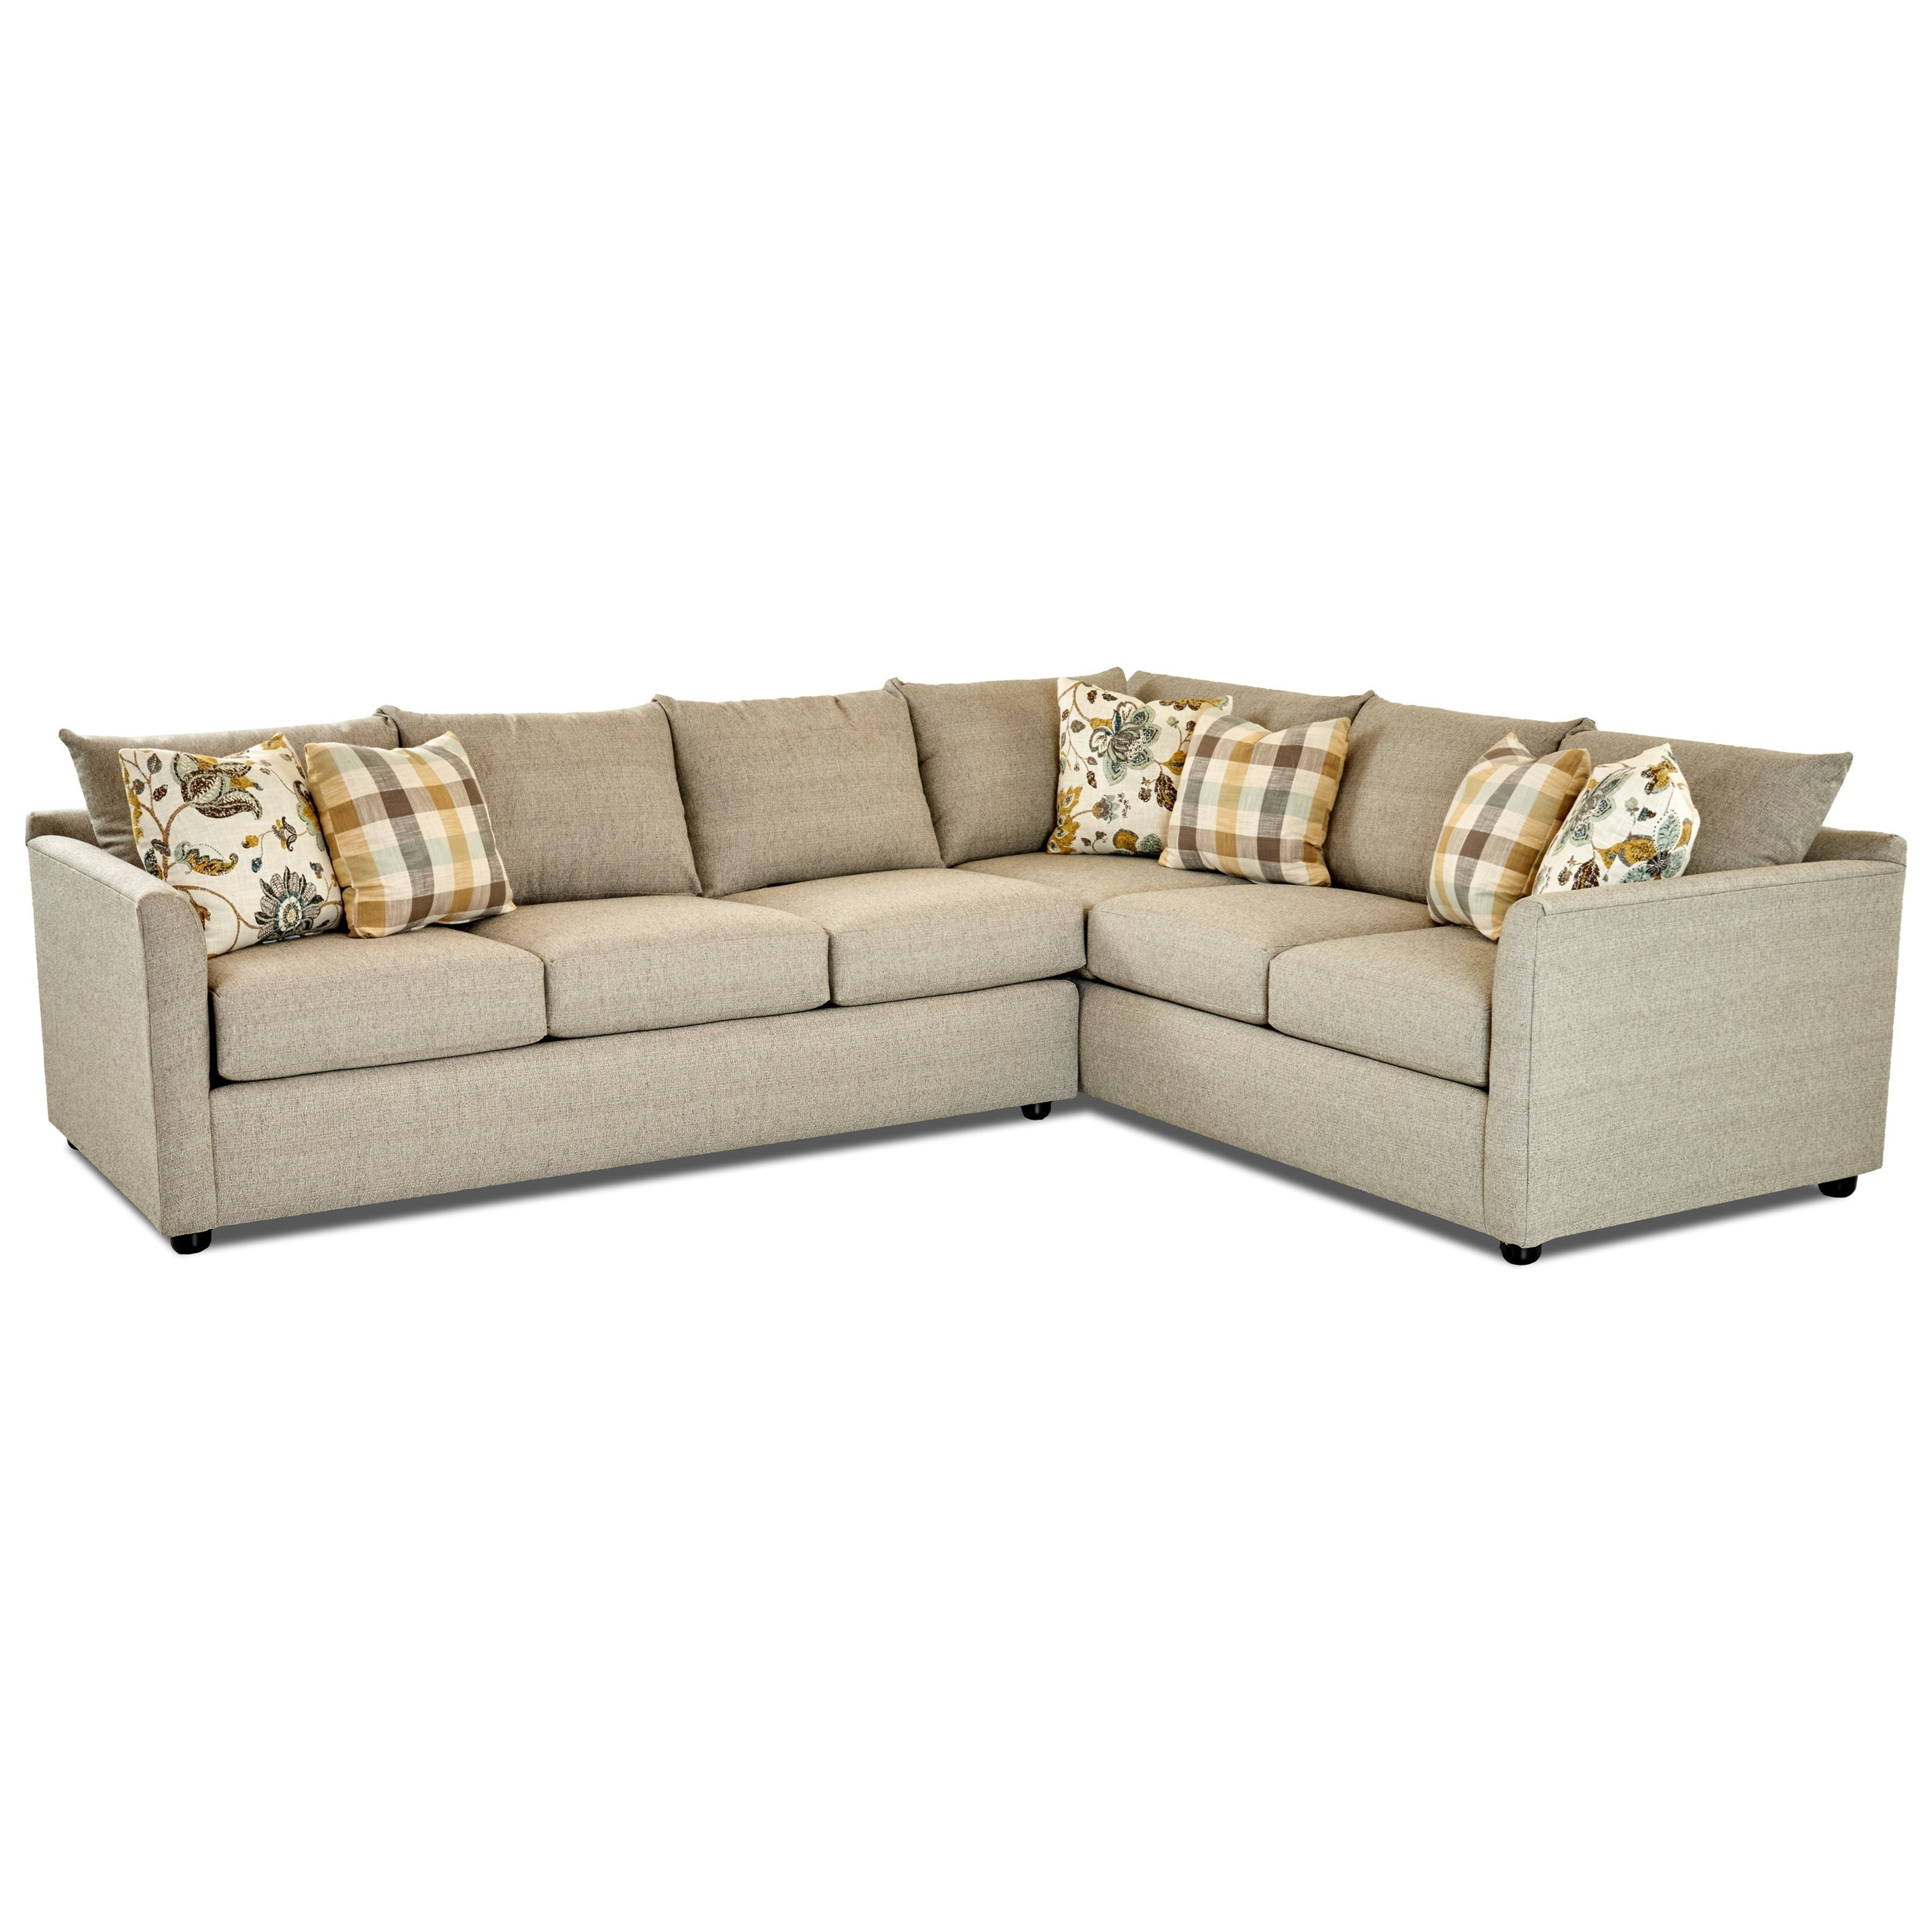 sofas in atlanta sofa bed with chaise longue uk trisha yearwood home transitional sectional tuxedo arms